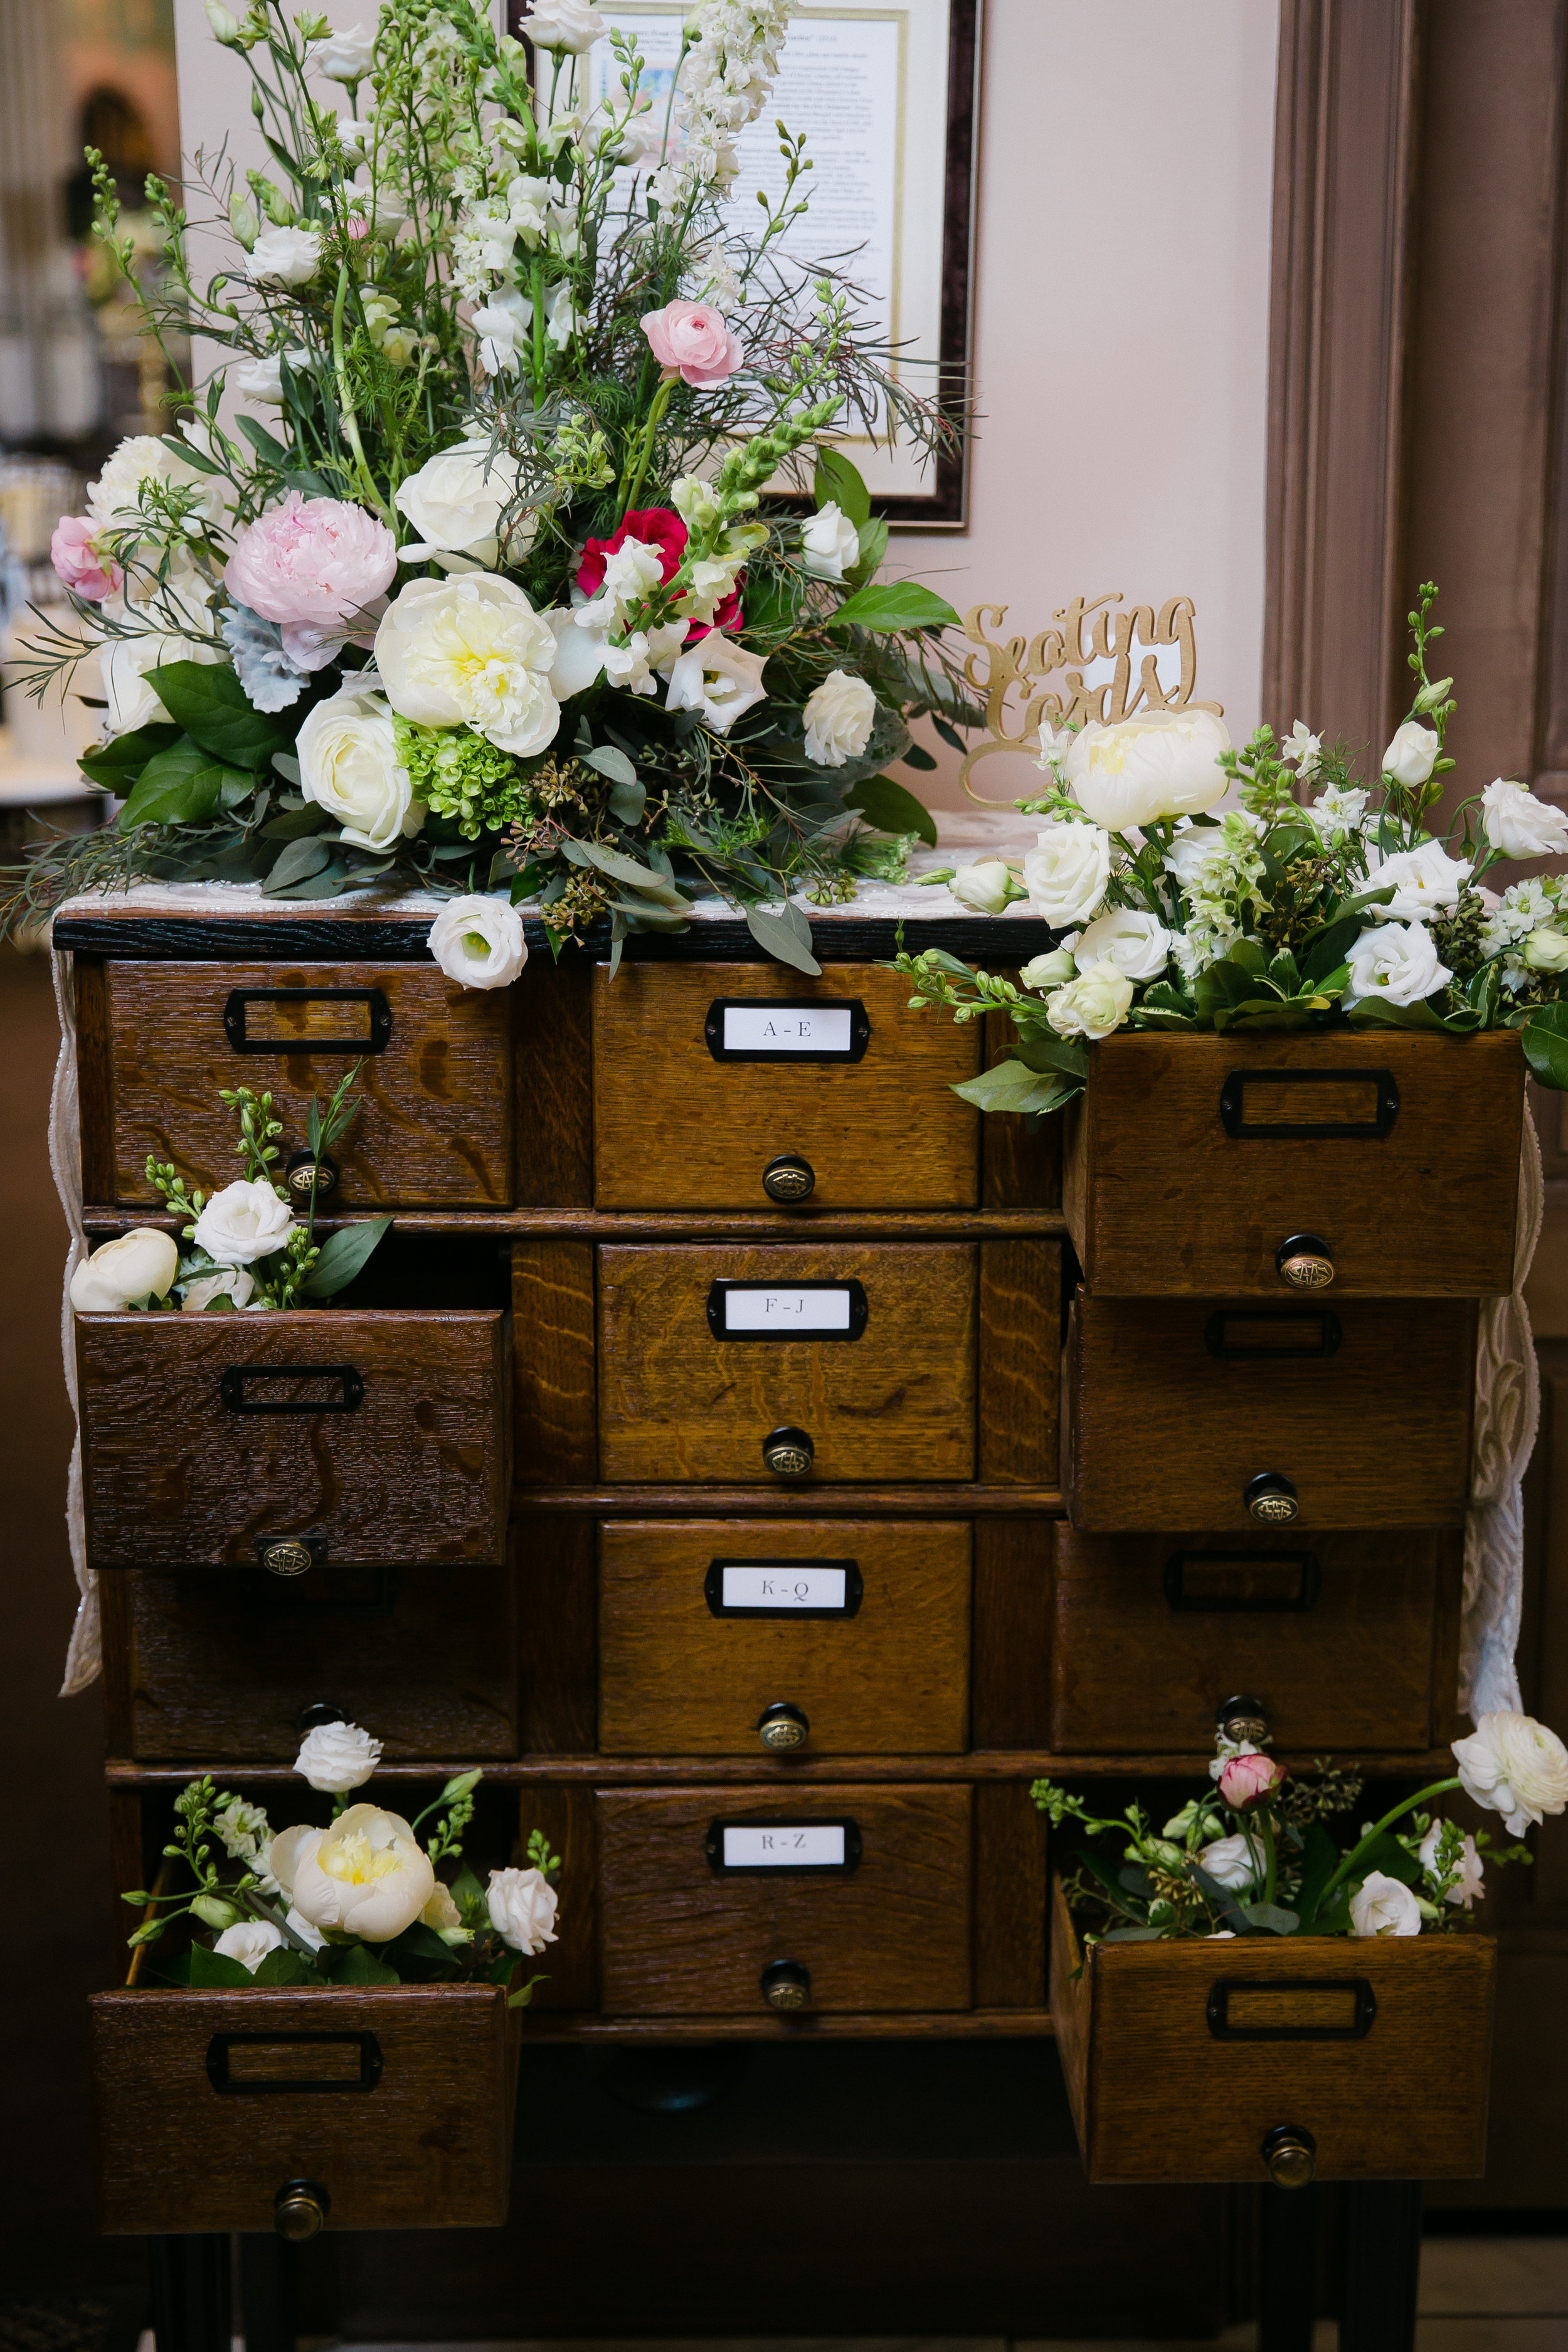 Library card catalogue with pink, white, and red flowers for Monastery Event Center wedding reception in Cincinnati.  Florals by Yellow Canary www.yellowcanaryonline.com